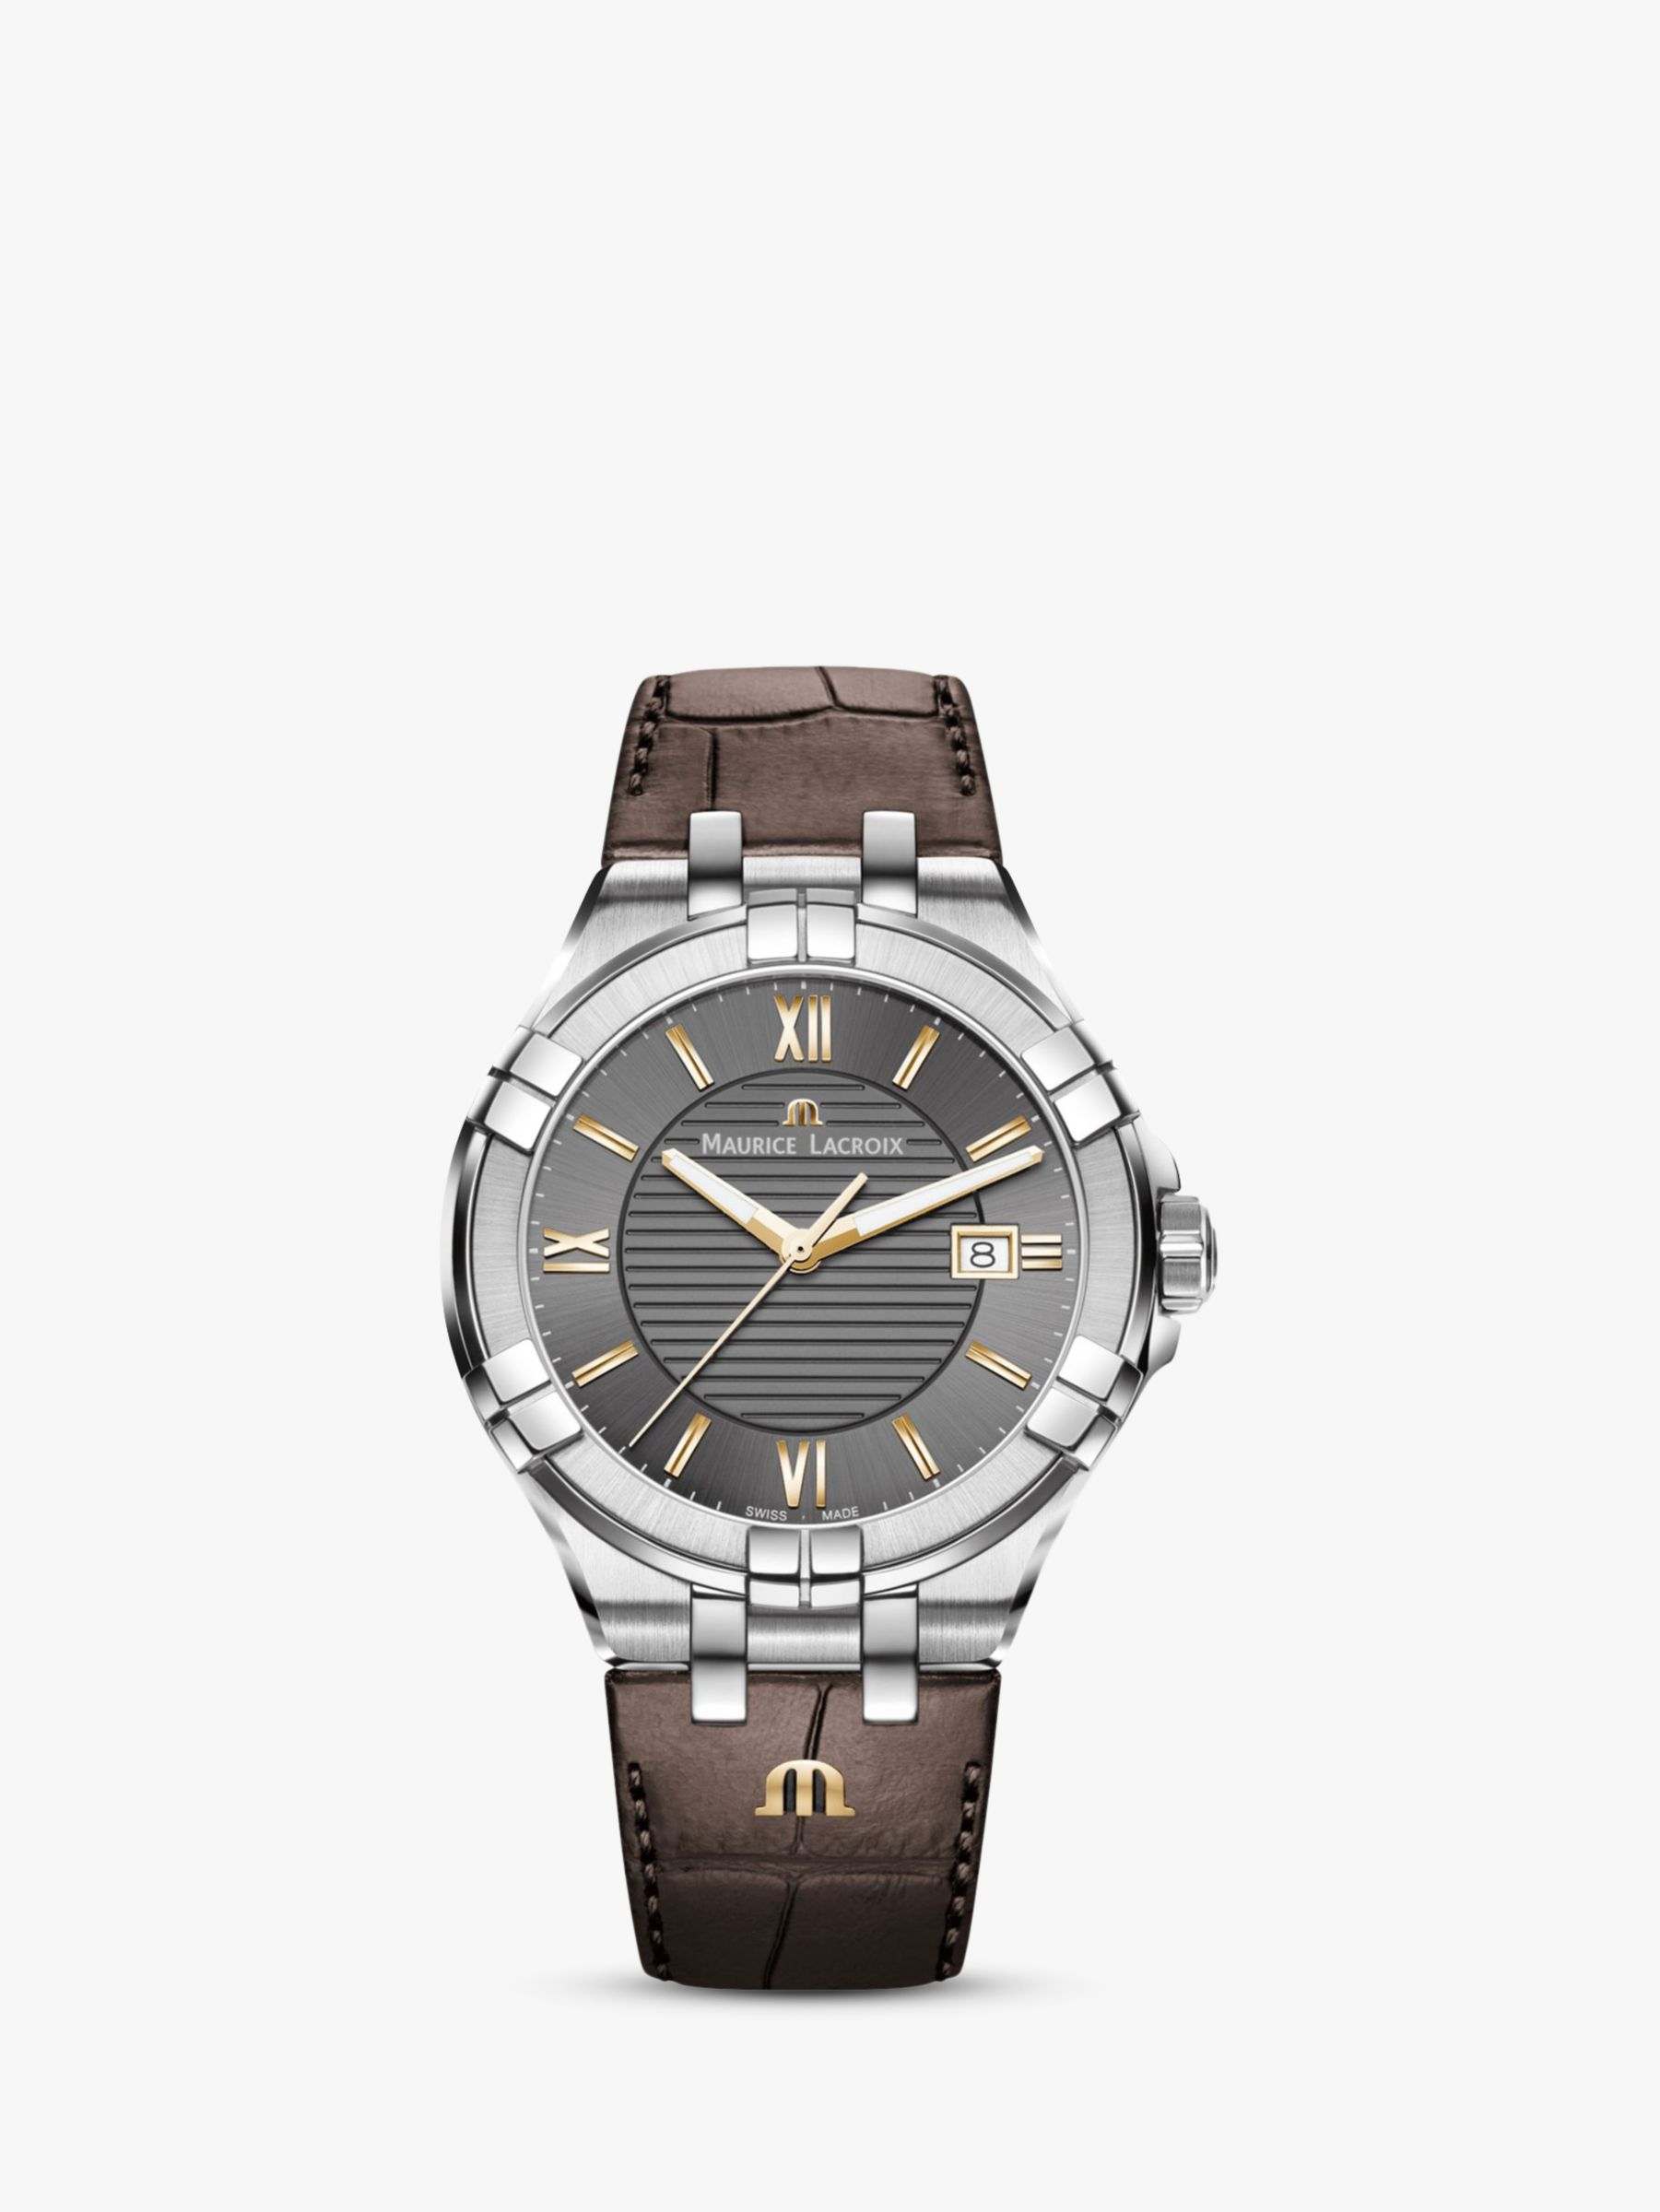 Maurice Lacroix Maurice Lacroix AI1008-SS001-333-1 Men's Aikon Date Leather Strap Watch, Brown/Dark Grey